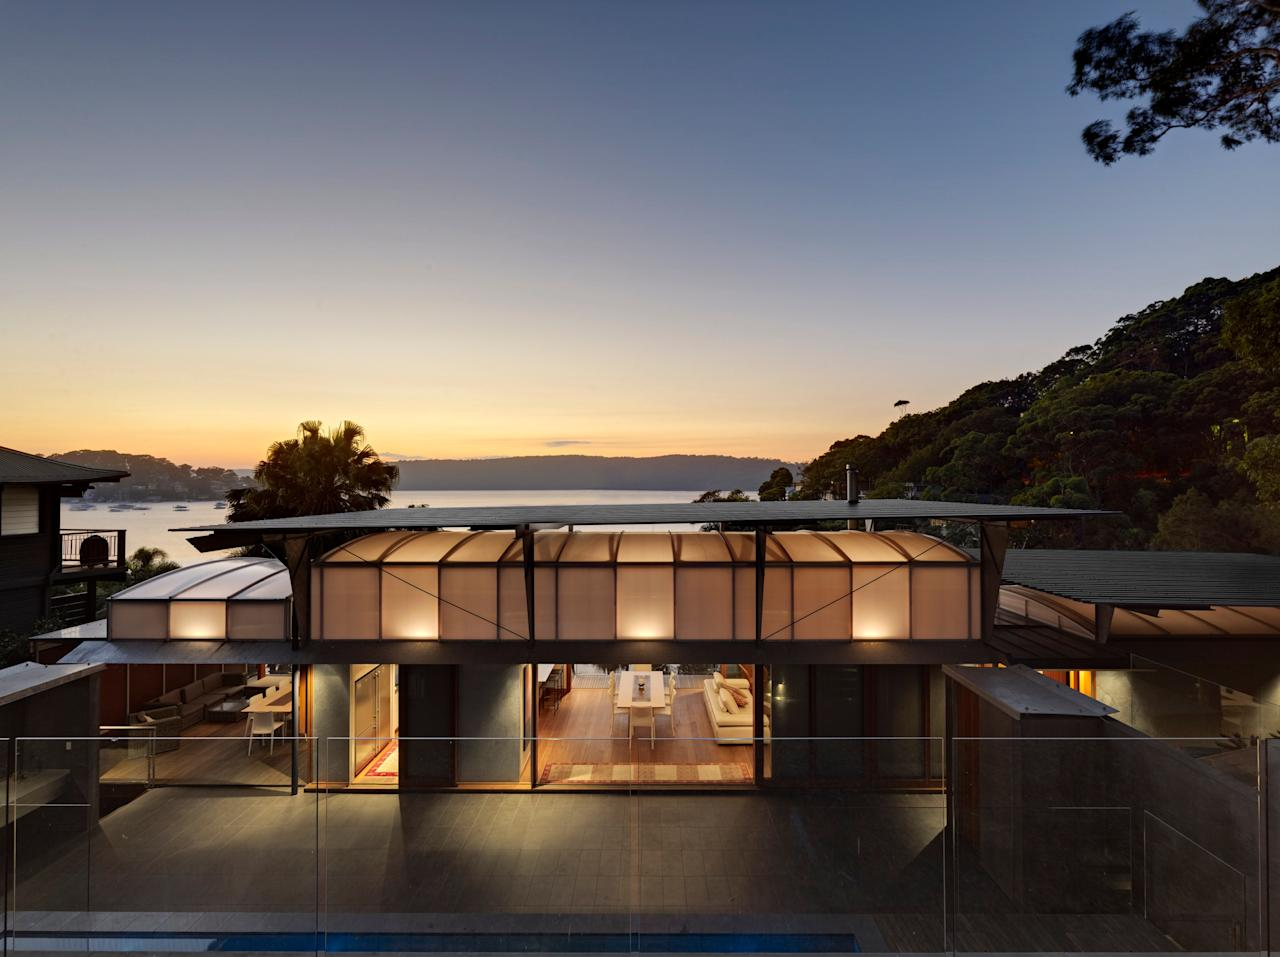 Built with Fergus Scott Architects, Cliff Face House in Palm Beach, New South Wales, incorporates the sandstone rock face into the structure of the home. A polycarbonate vault filters soft light into the living areas and ventilation holes cool the house naturally.